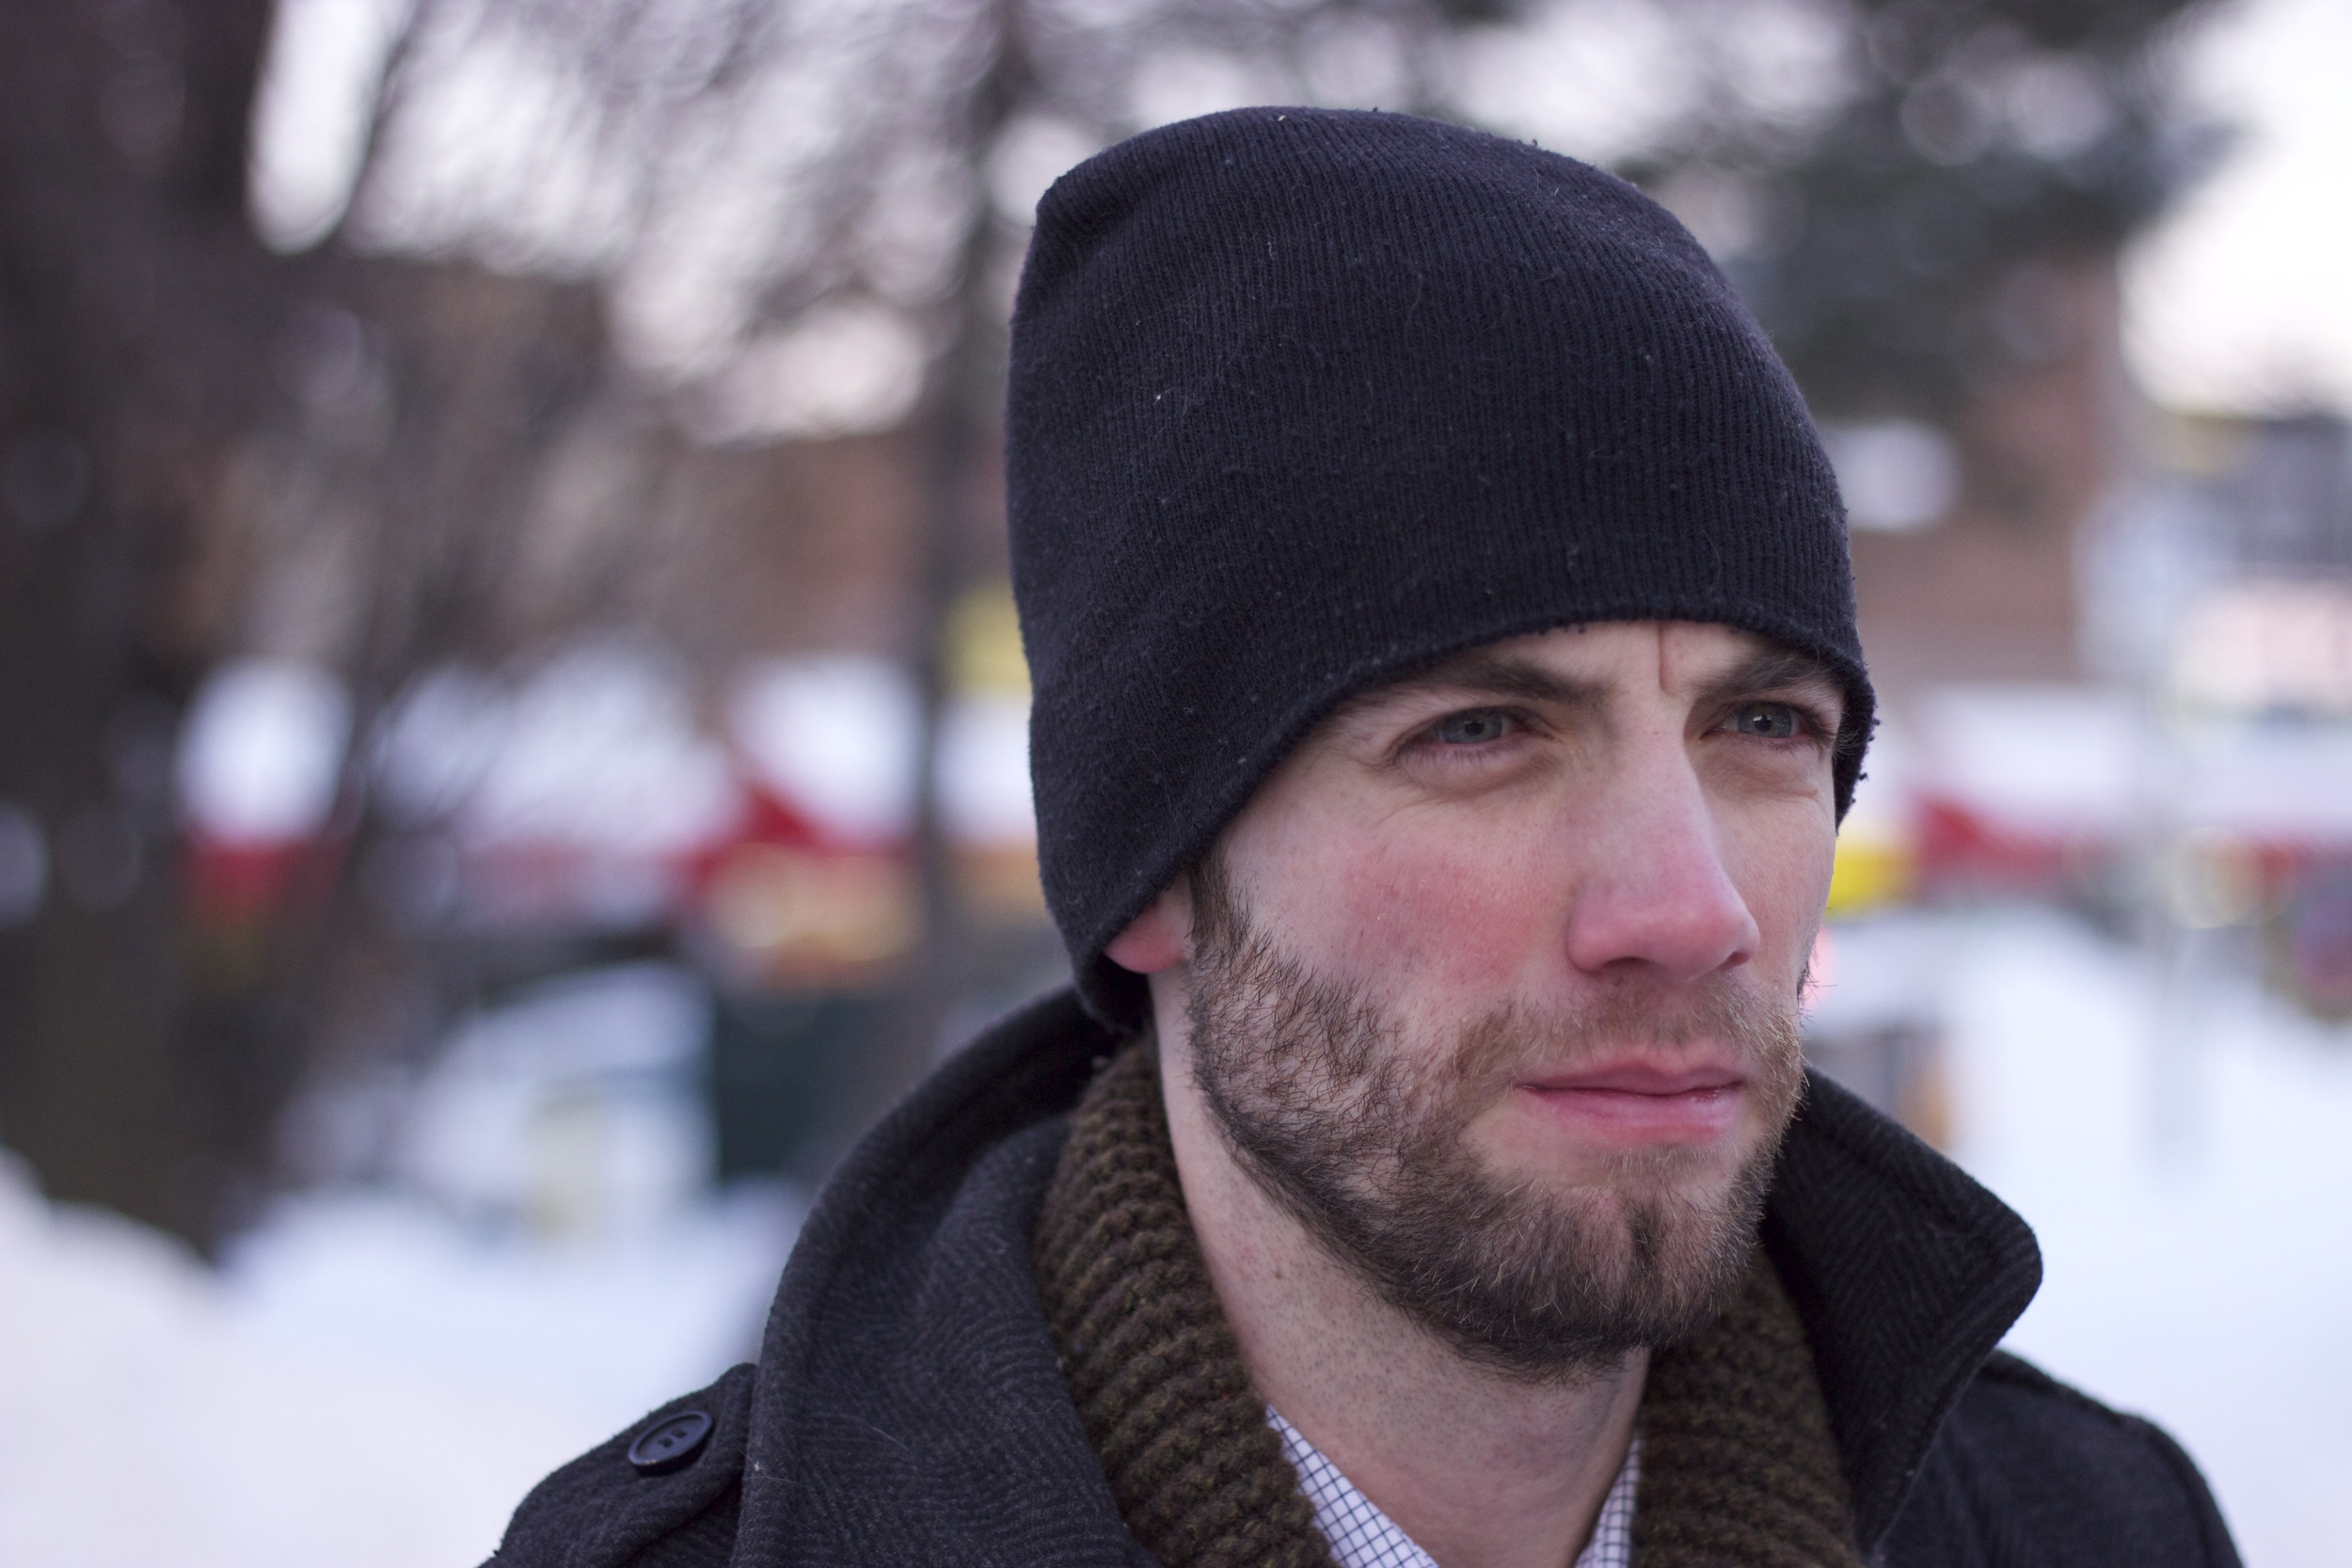 Portrait of my husband while waiting at a stop light from our walk in the snow.